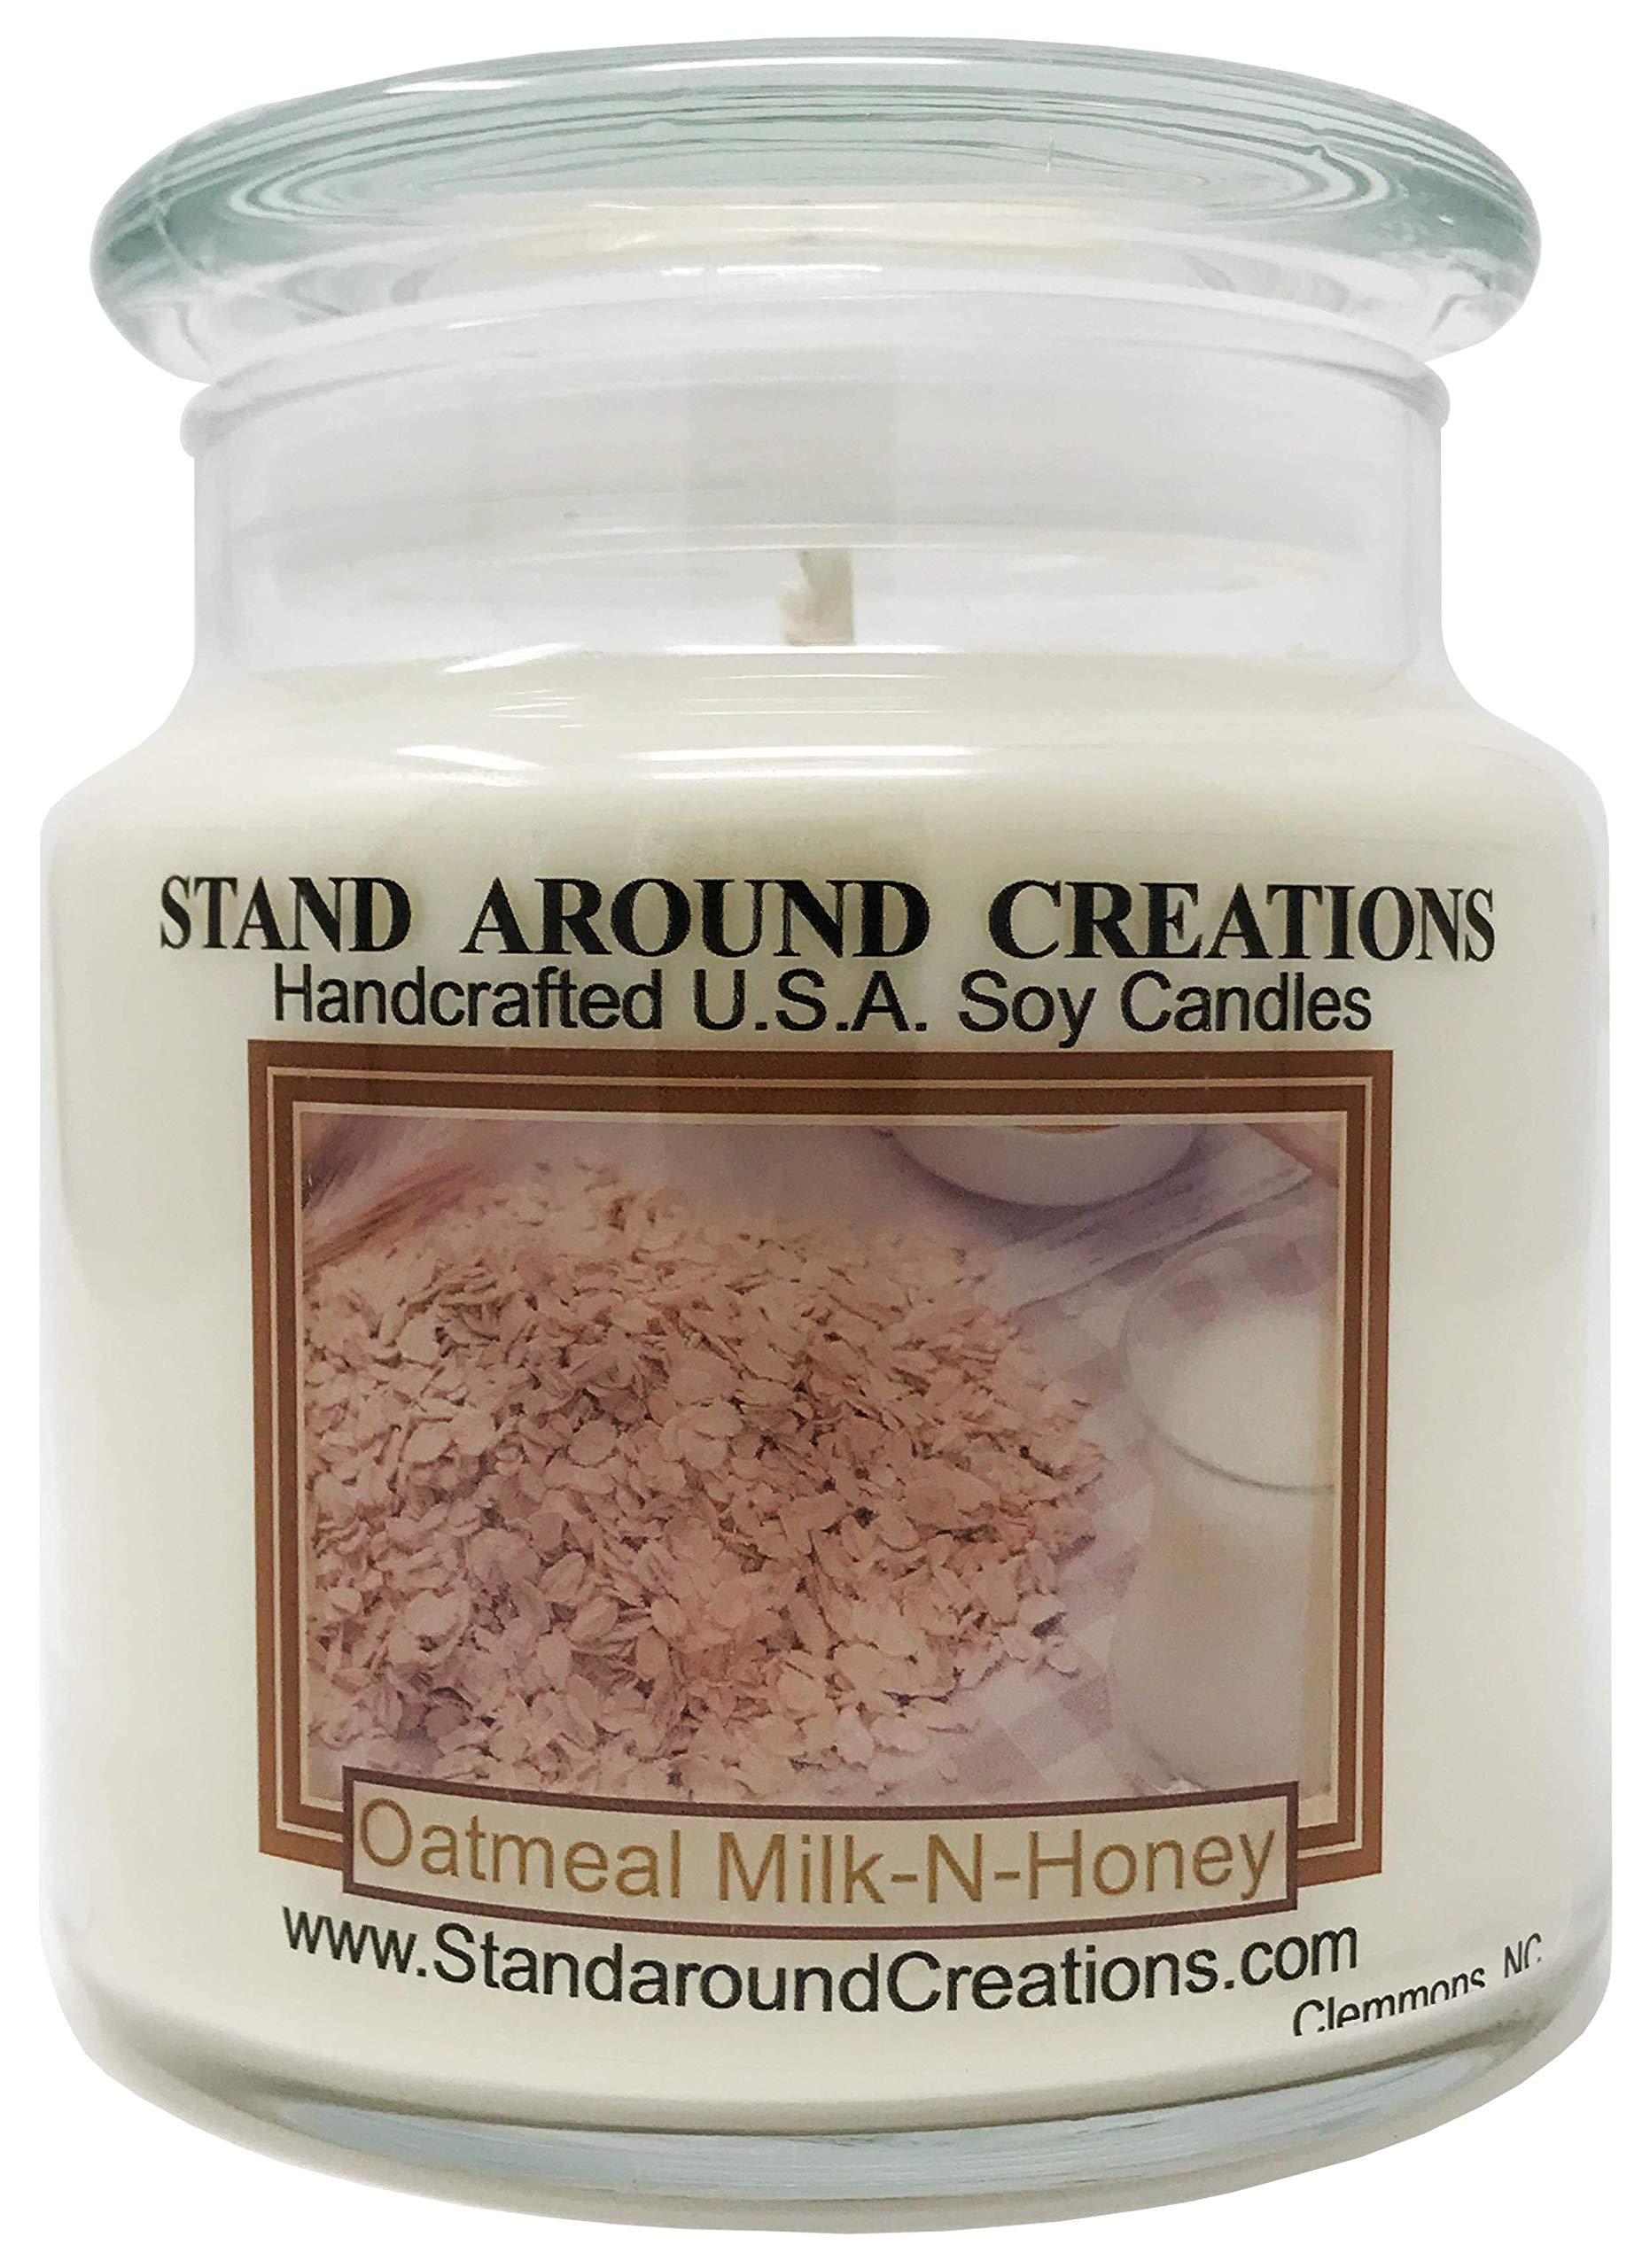 Premium 100% All Natural Soy Apothecary Candle - 16 oz. - Oatmeal Milk & Honey: A rich blend of oatmeal, farm fresh milk and a dollop of honey.